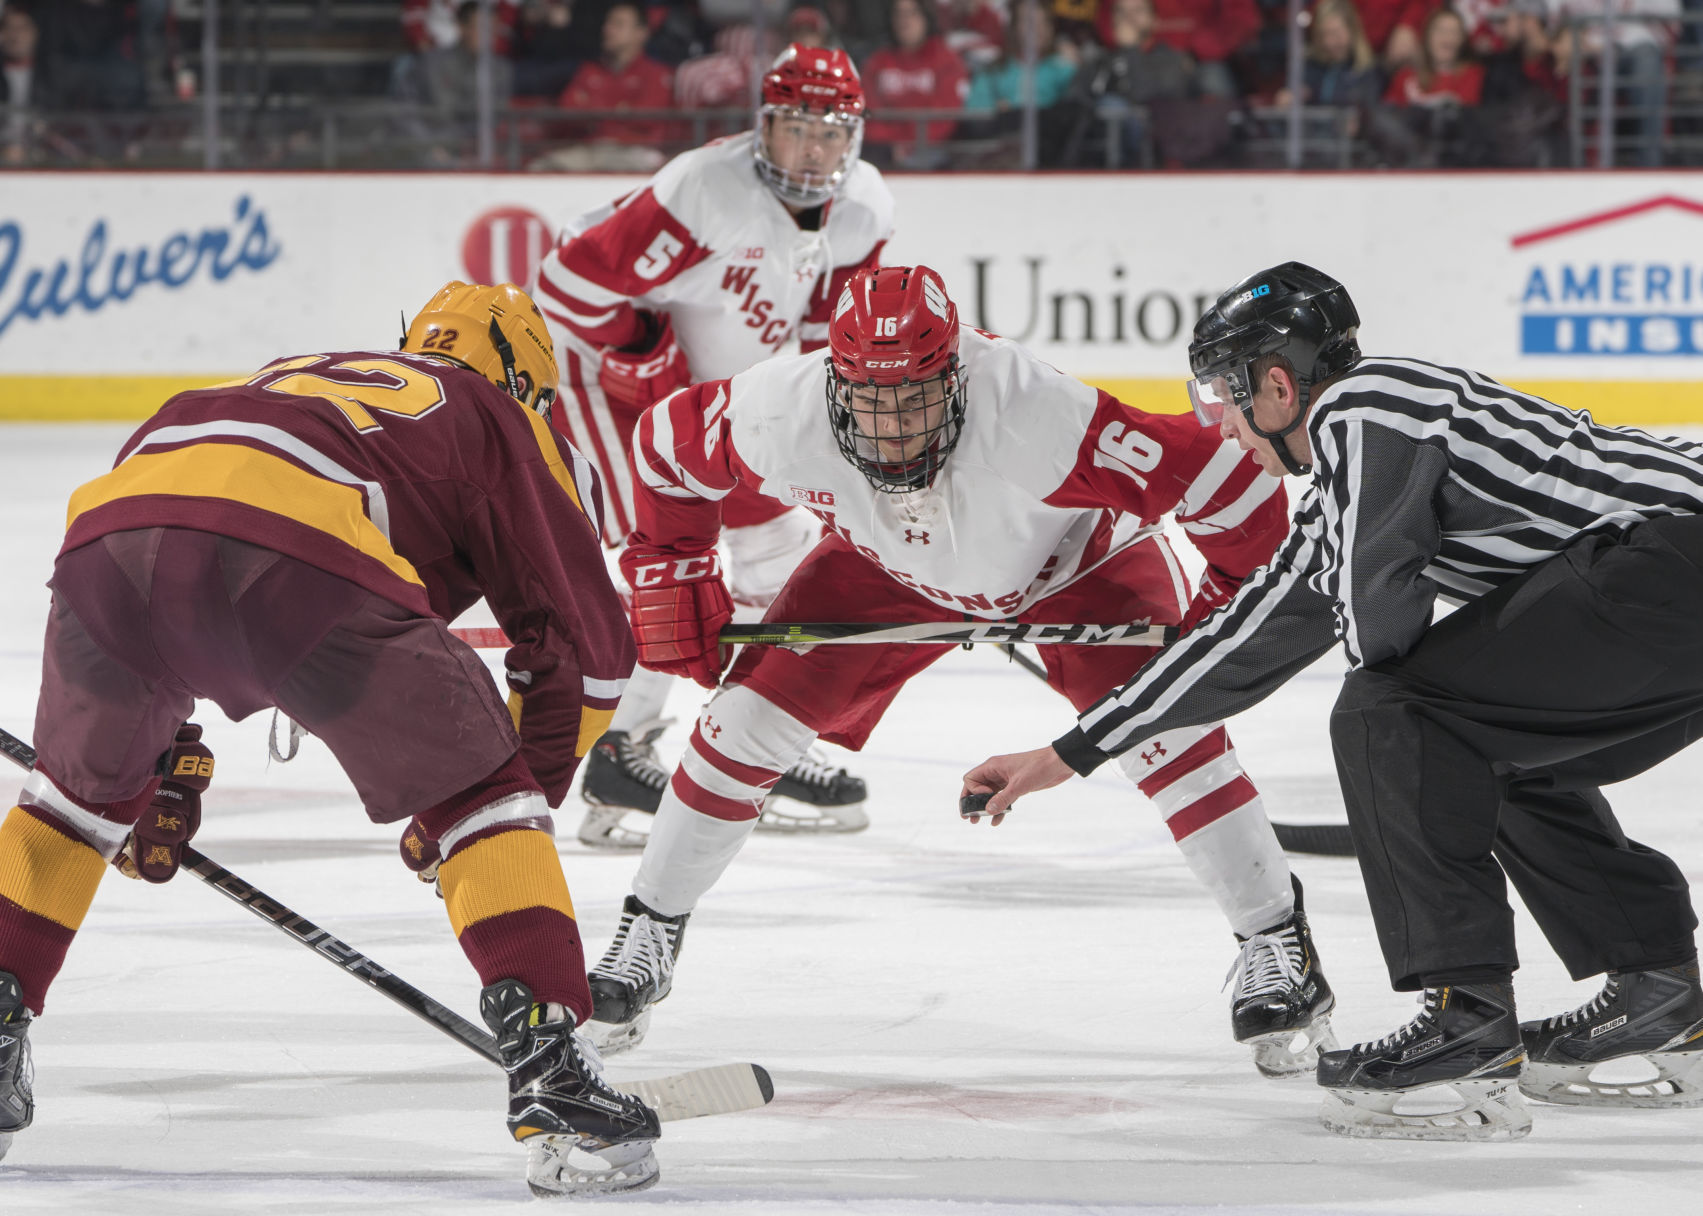 BIG10: With No Runaway Leader This Season, Big Ten Men's Hockey Title Up For Grabs In Second Half